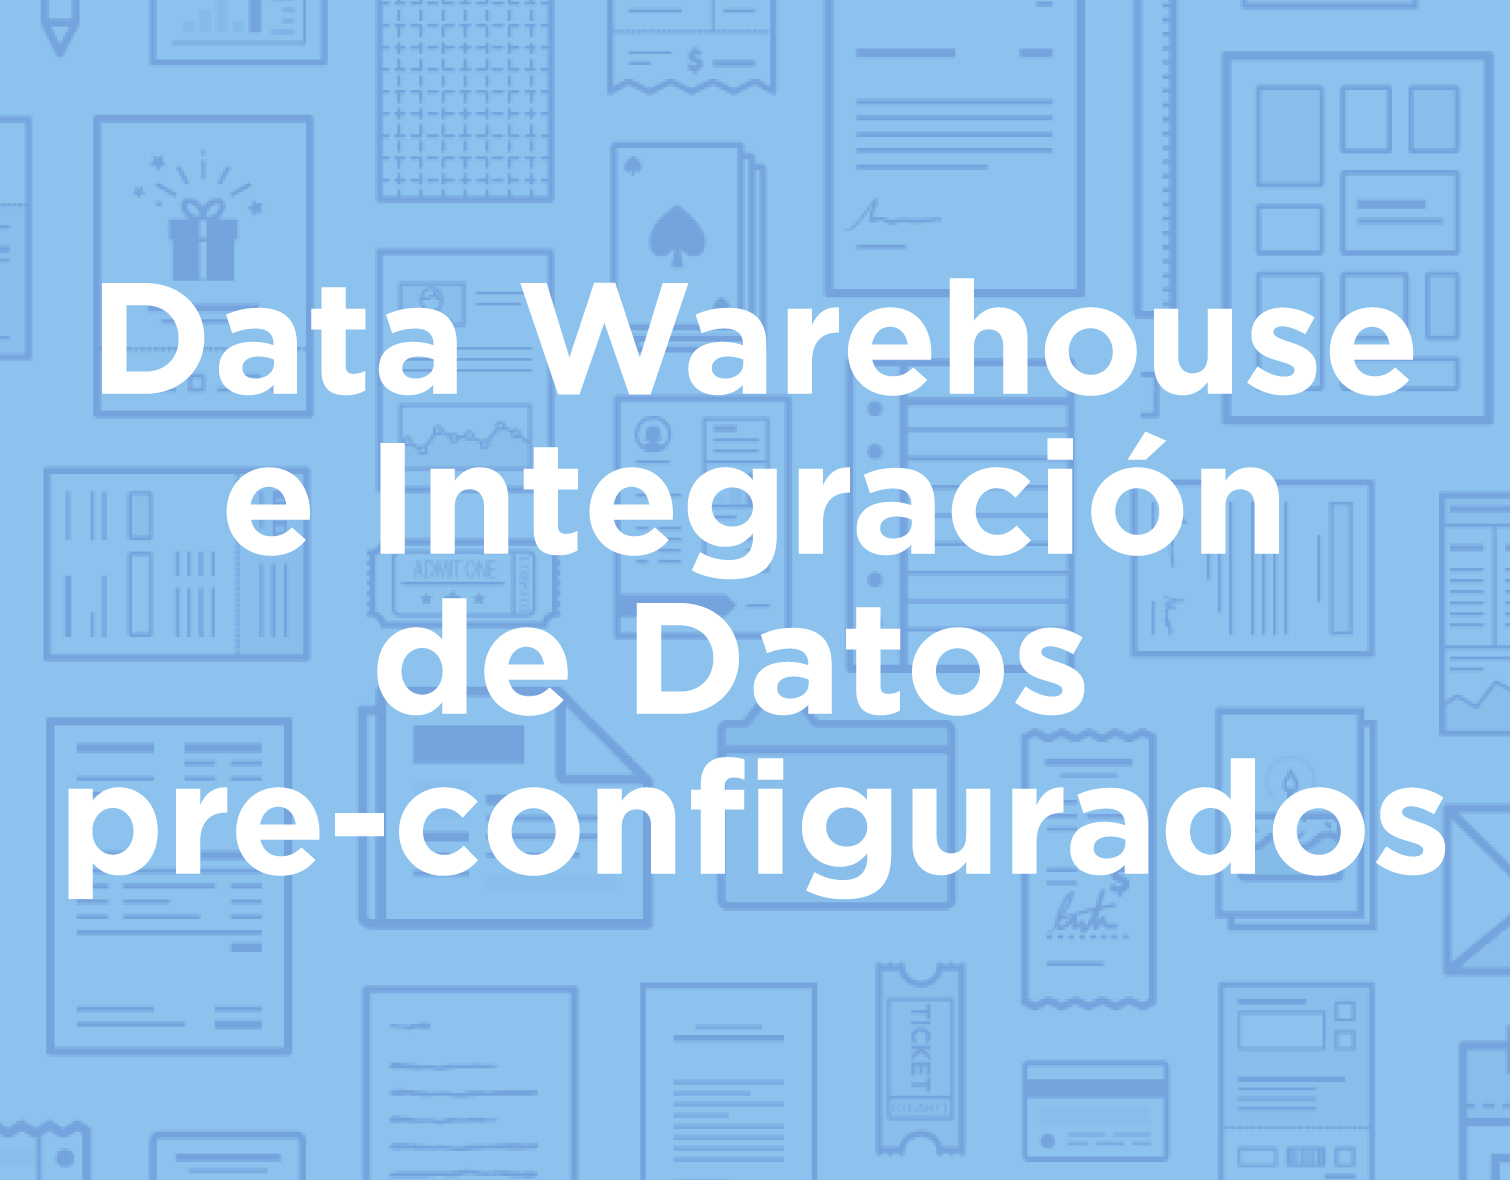 icon_products_spa_Data-Warehouse-e-Integracion-Datos_selected.jpg